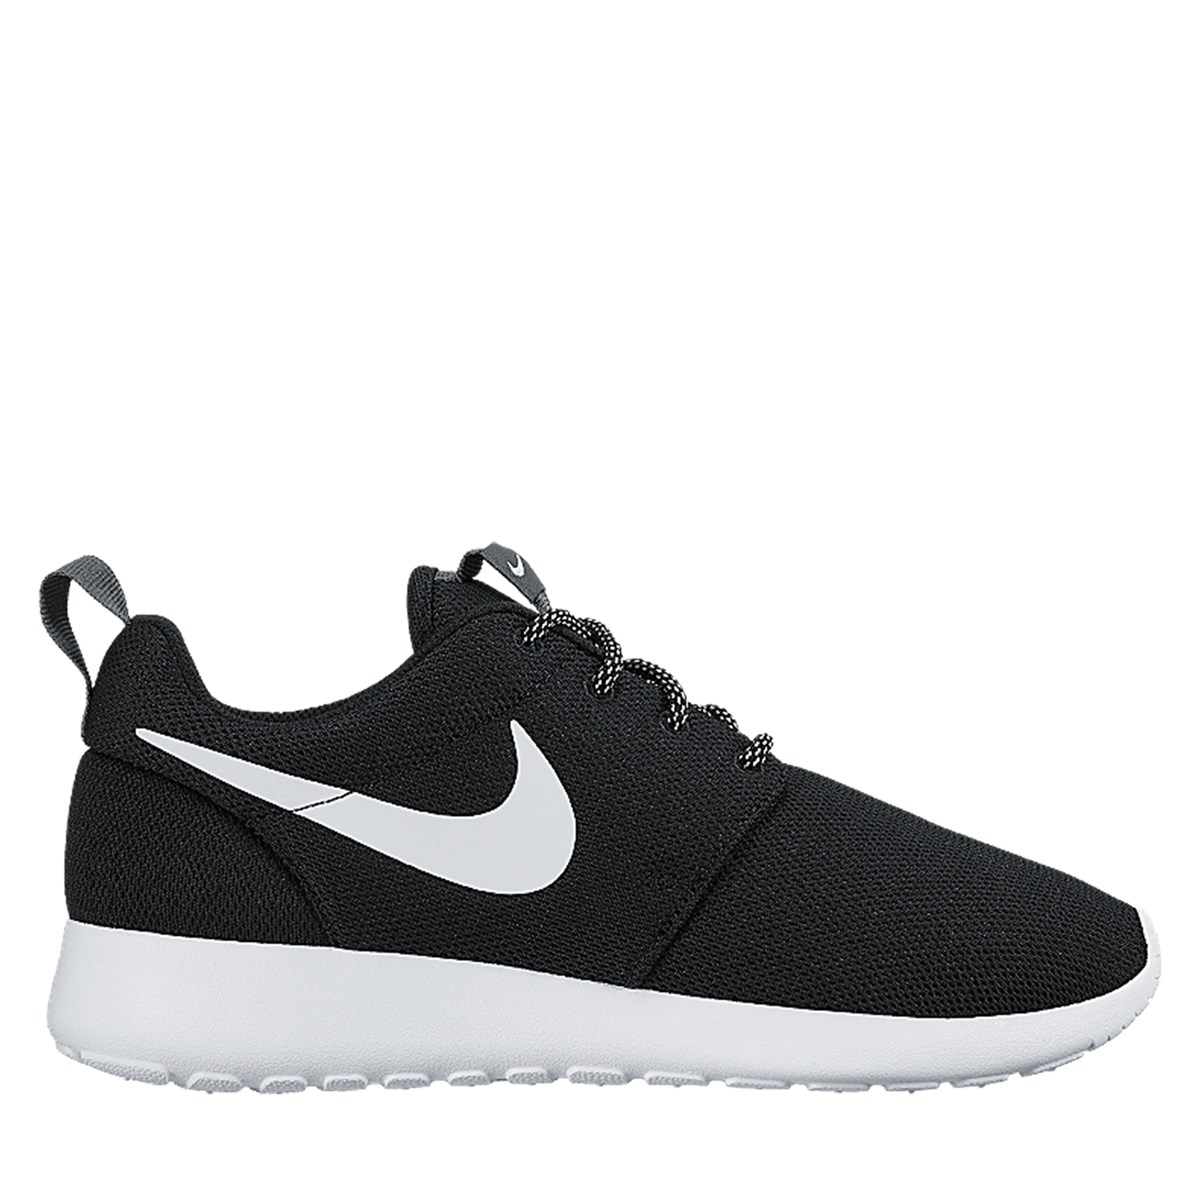 Women's Roshe One Run Black Sneaker